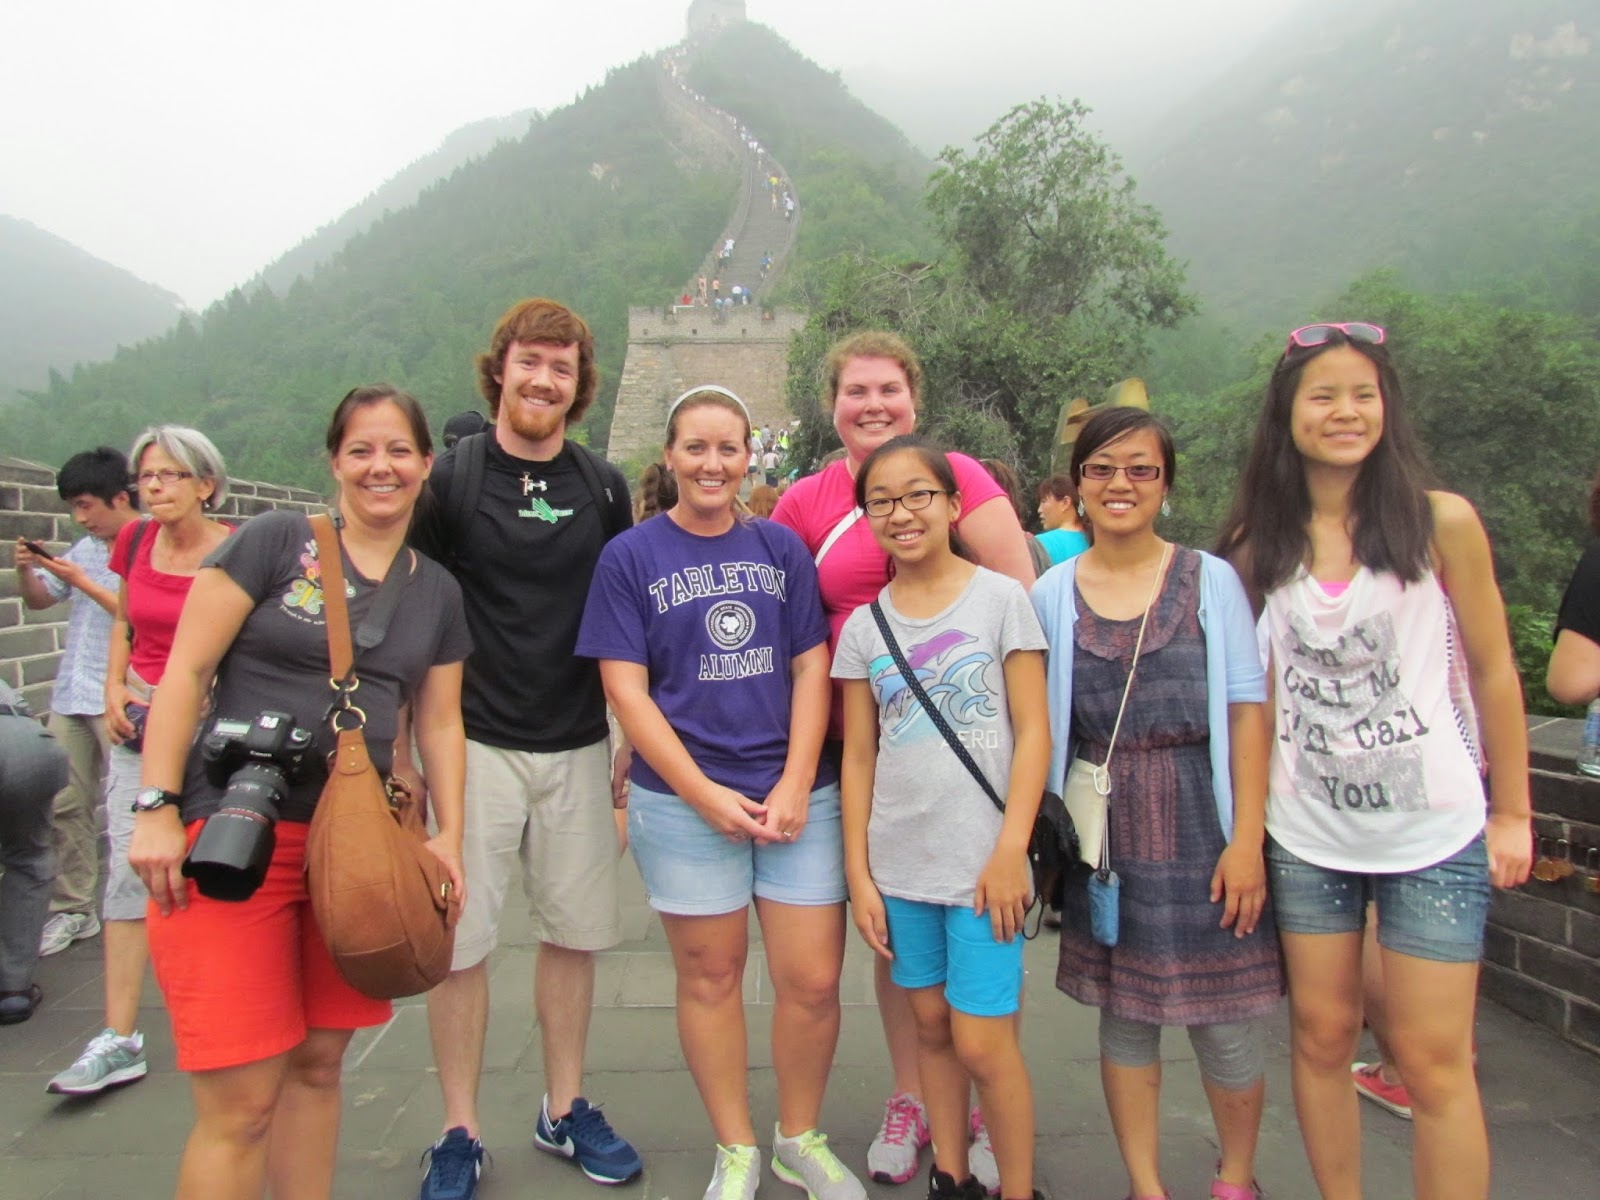 The group who attempted to climb to the top of the Great Wall